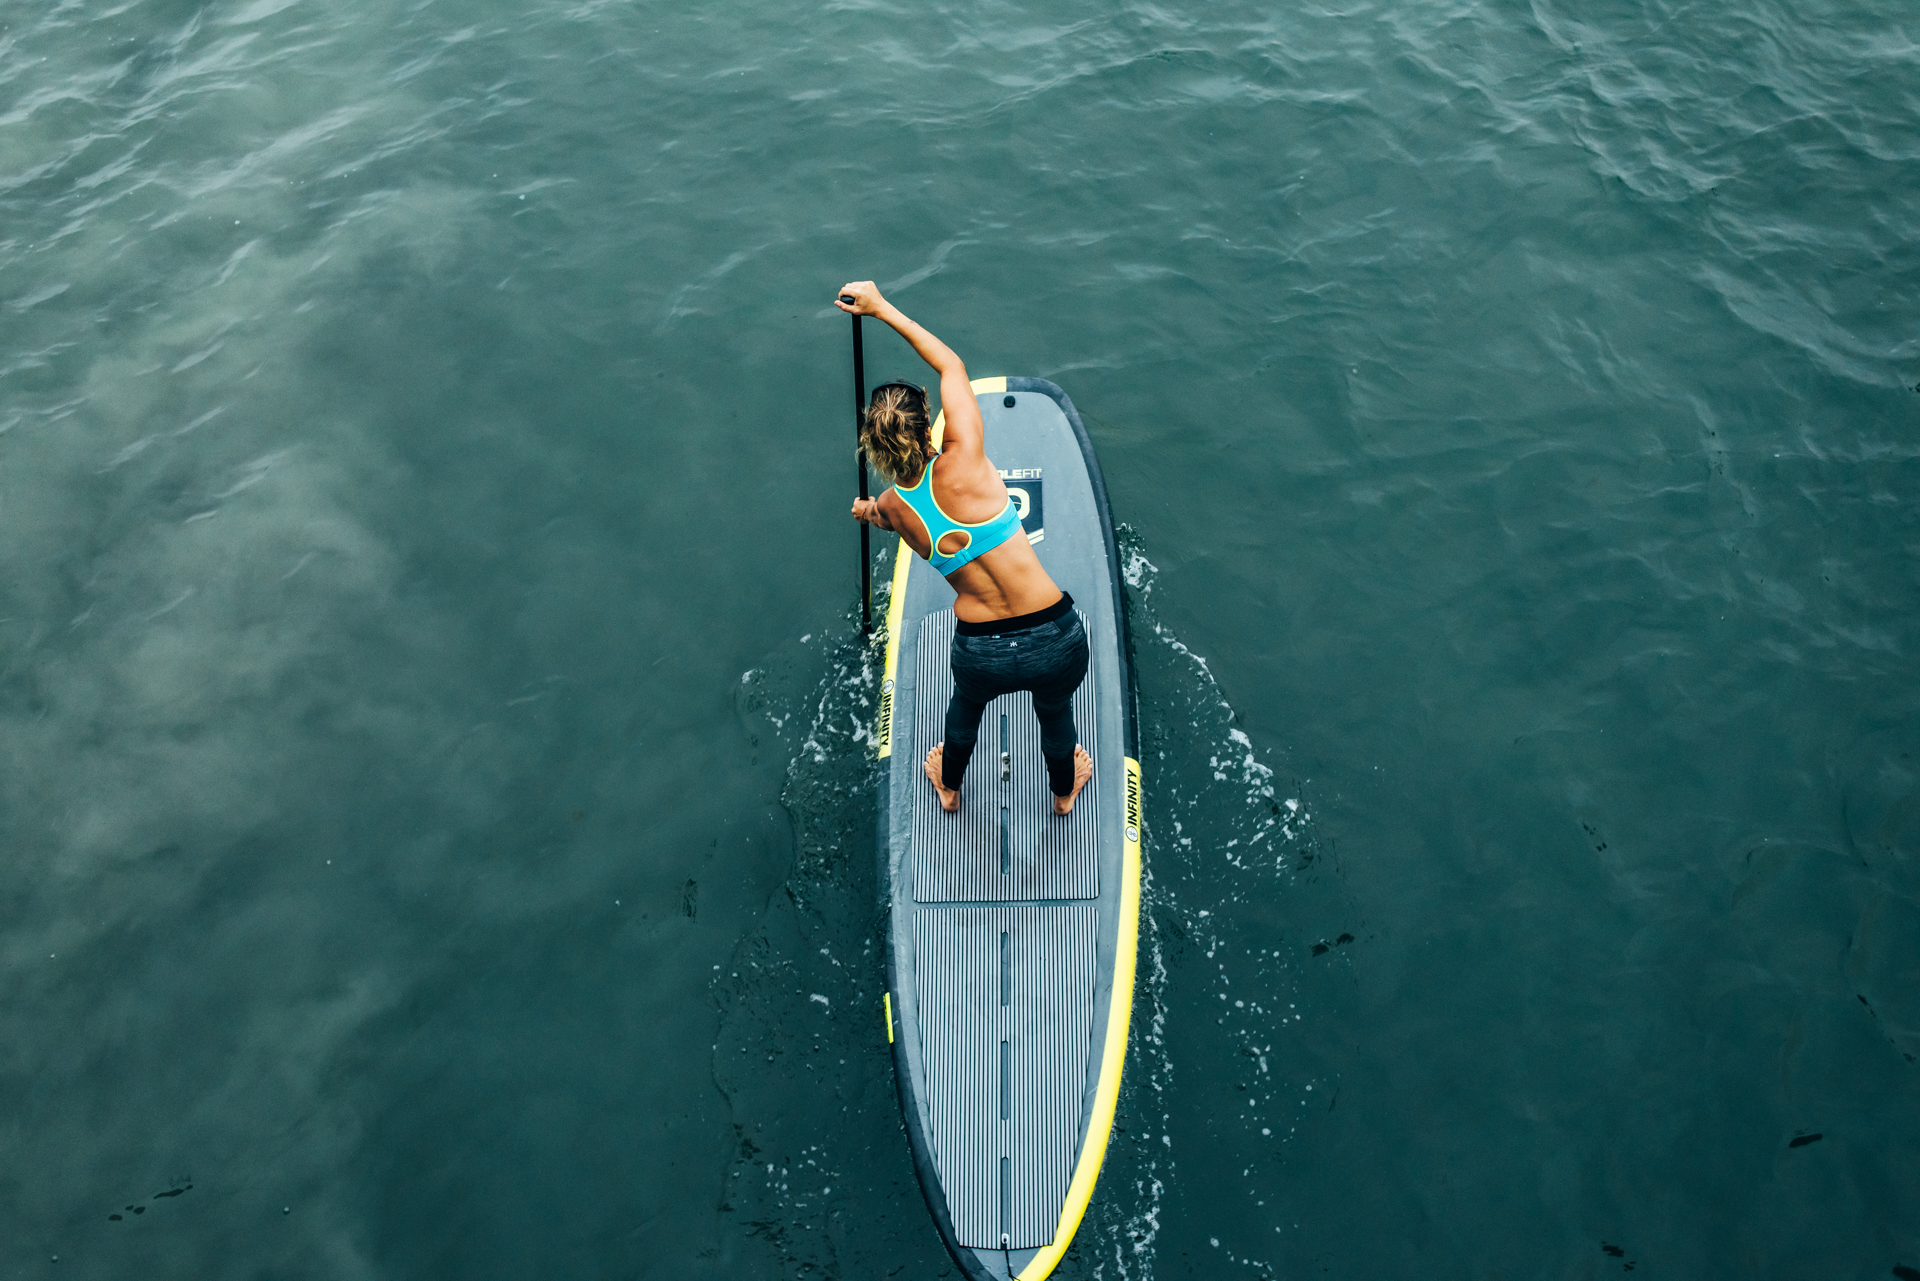 PADDLEFIT PRO - Advance Your Skill and Knowledge